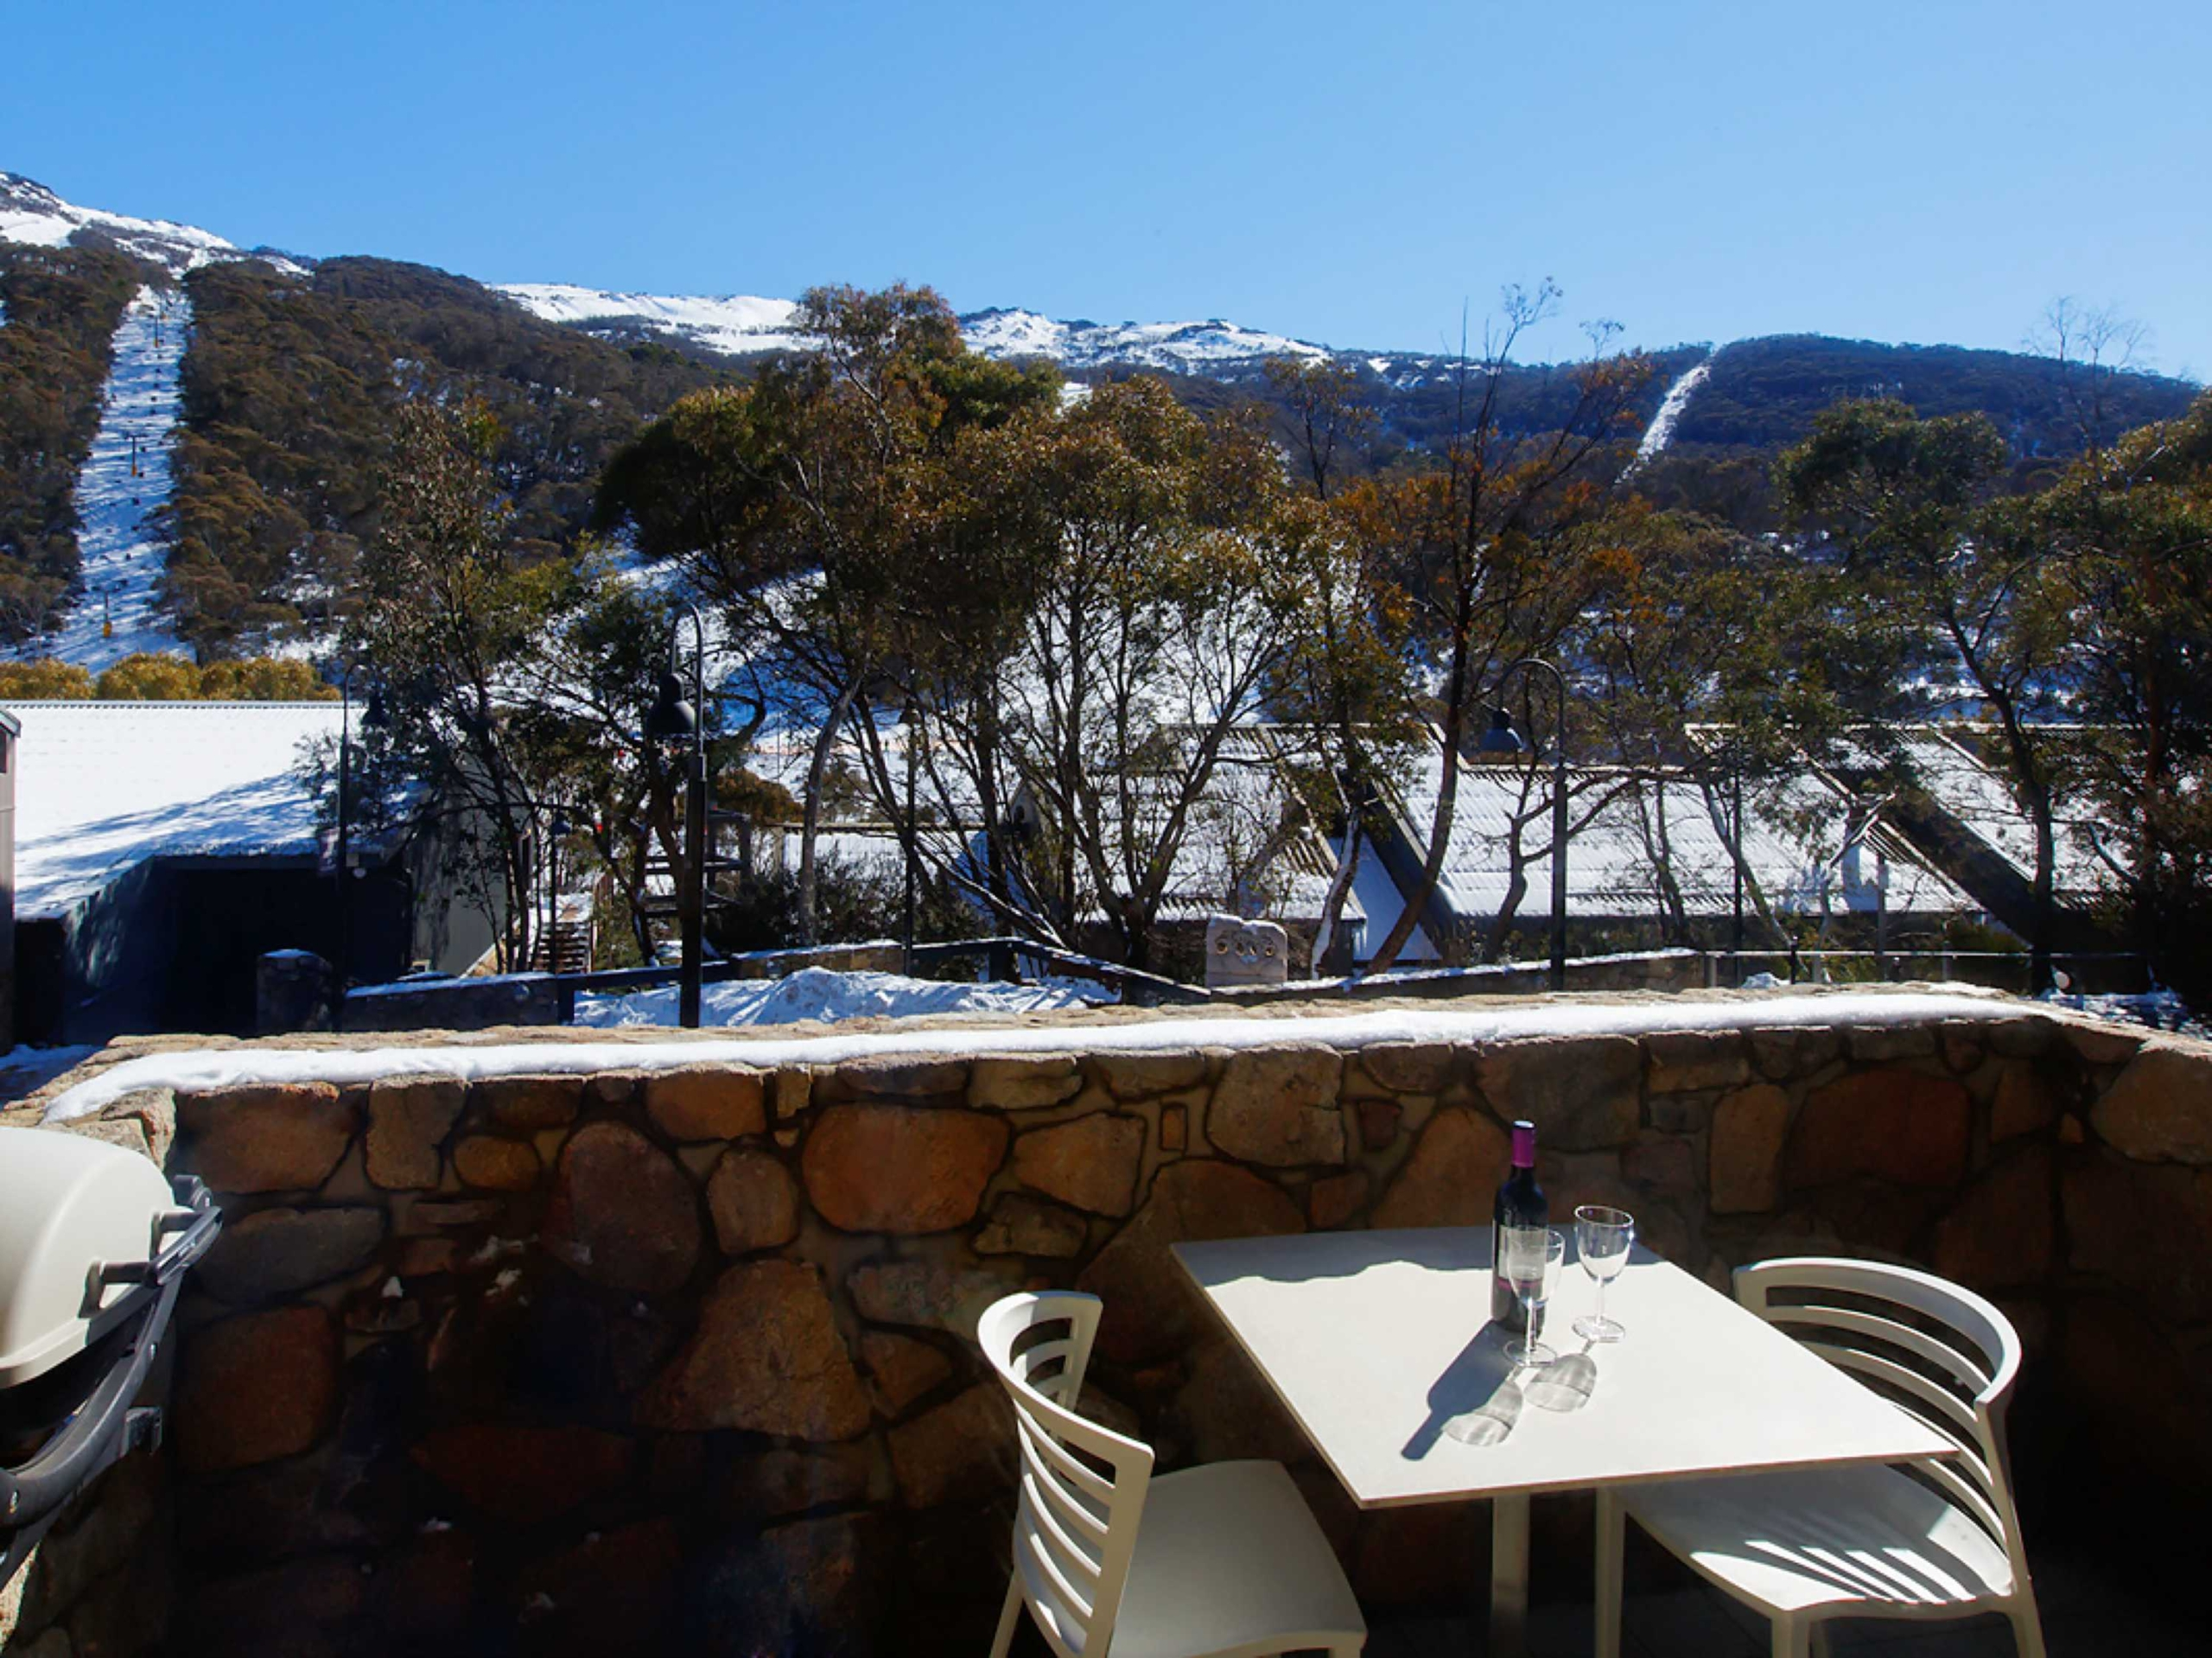 E2-Squatters-Run-Thredbo-Luxury-Apartments-Deluxe-1-Bedroom-Unit-234-persons-see-squatters.com_.au_-1-scaled